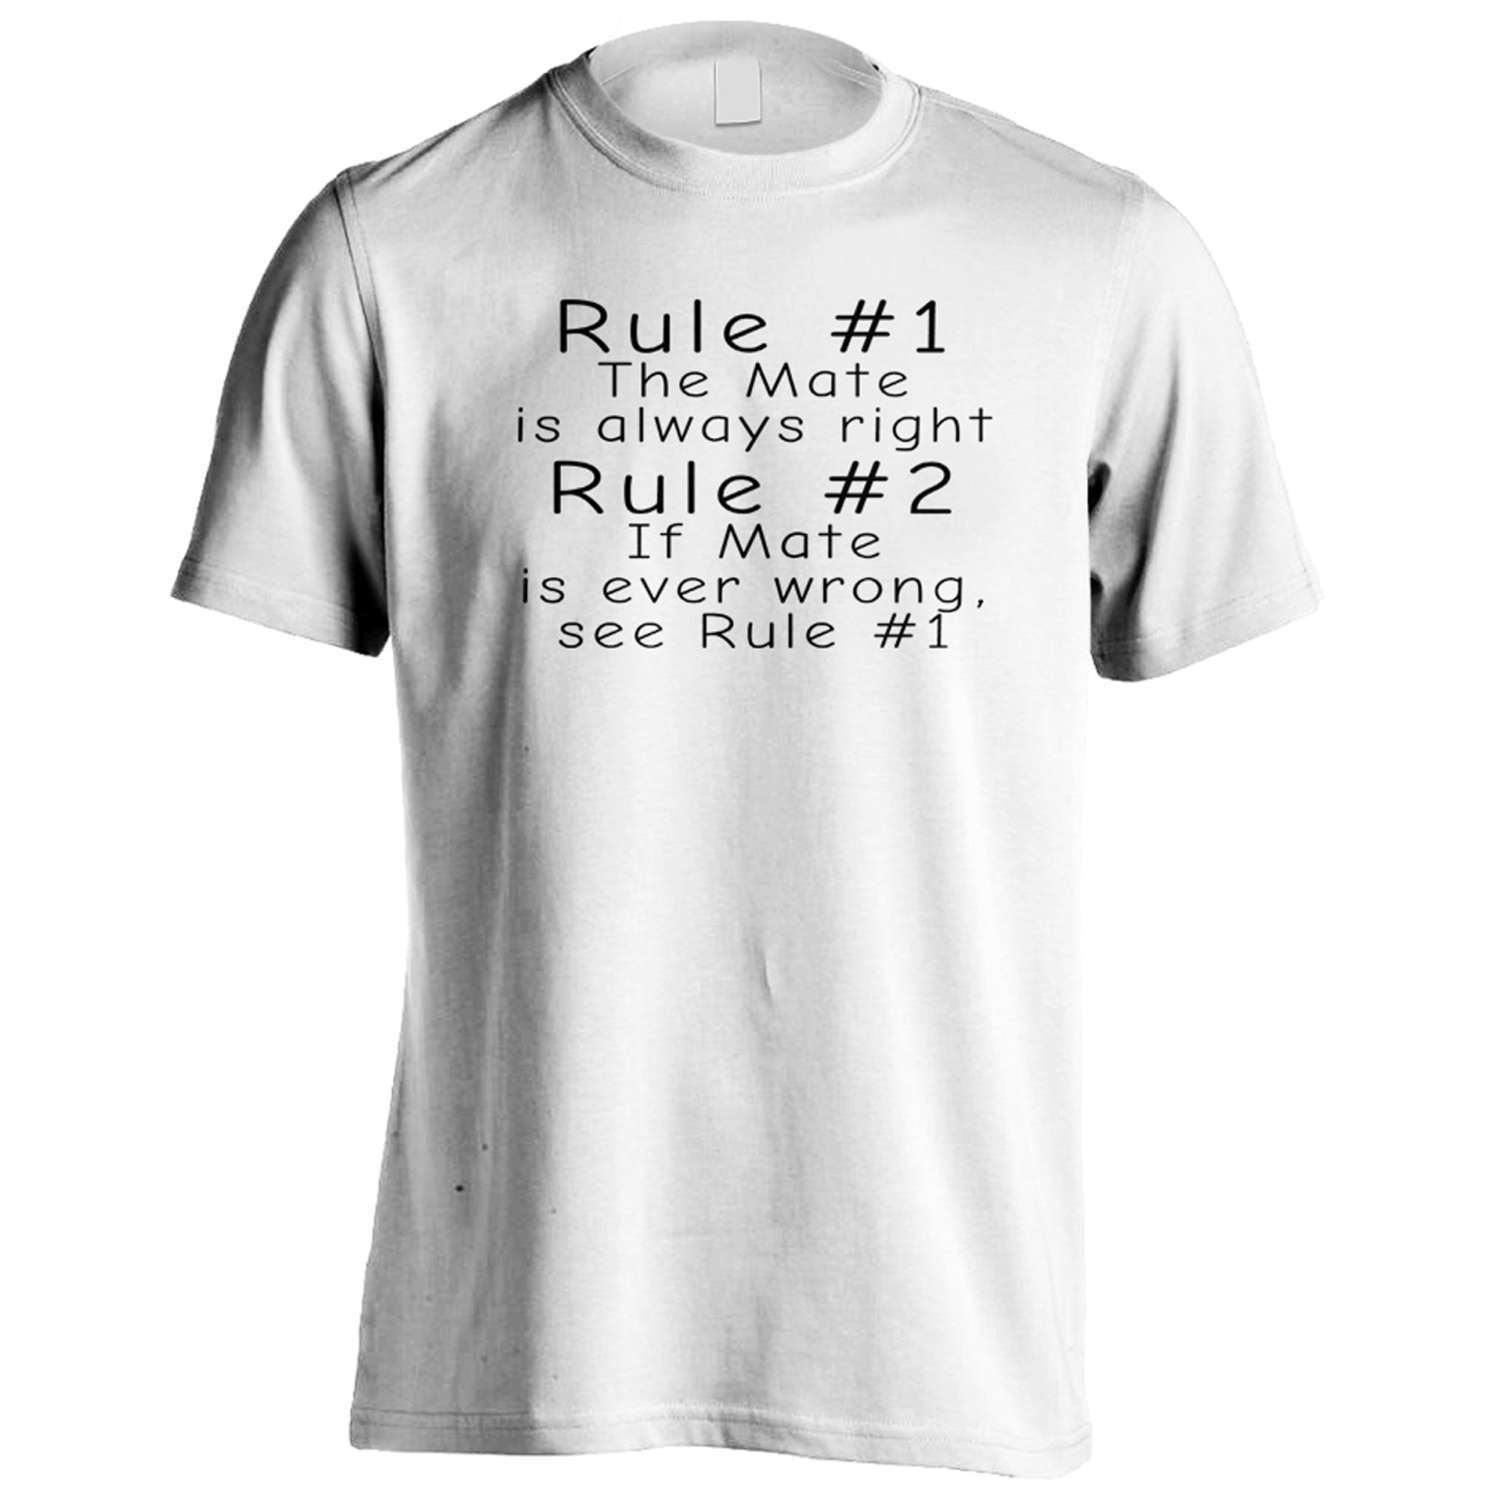 Rule 1 The Mate Is Always Right Rule 2 see Rule 1 Funny Men's T-Shirt Tee d28m